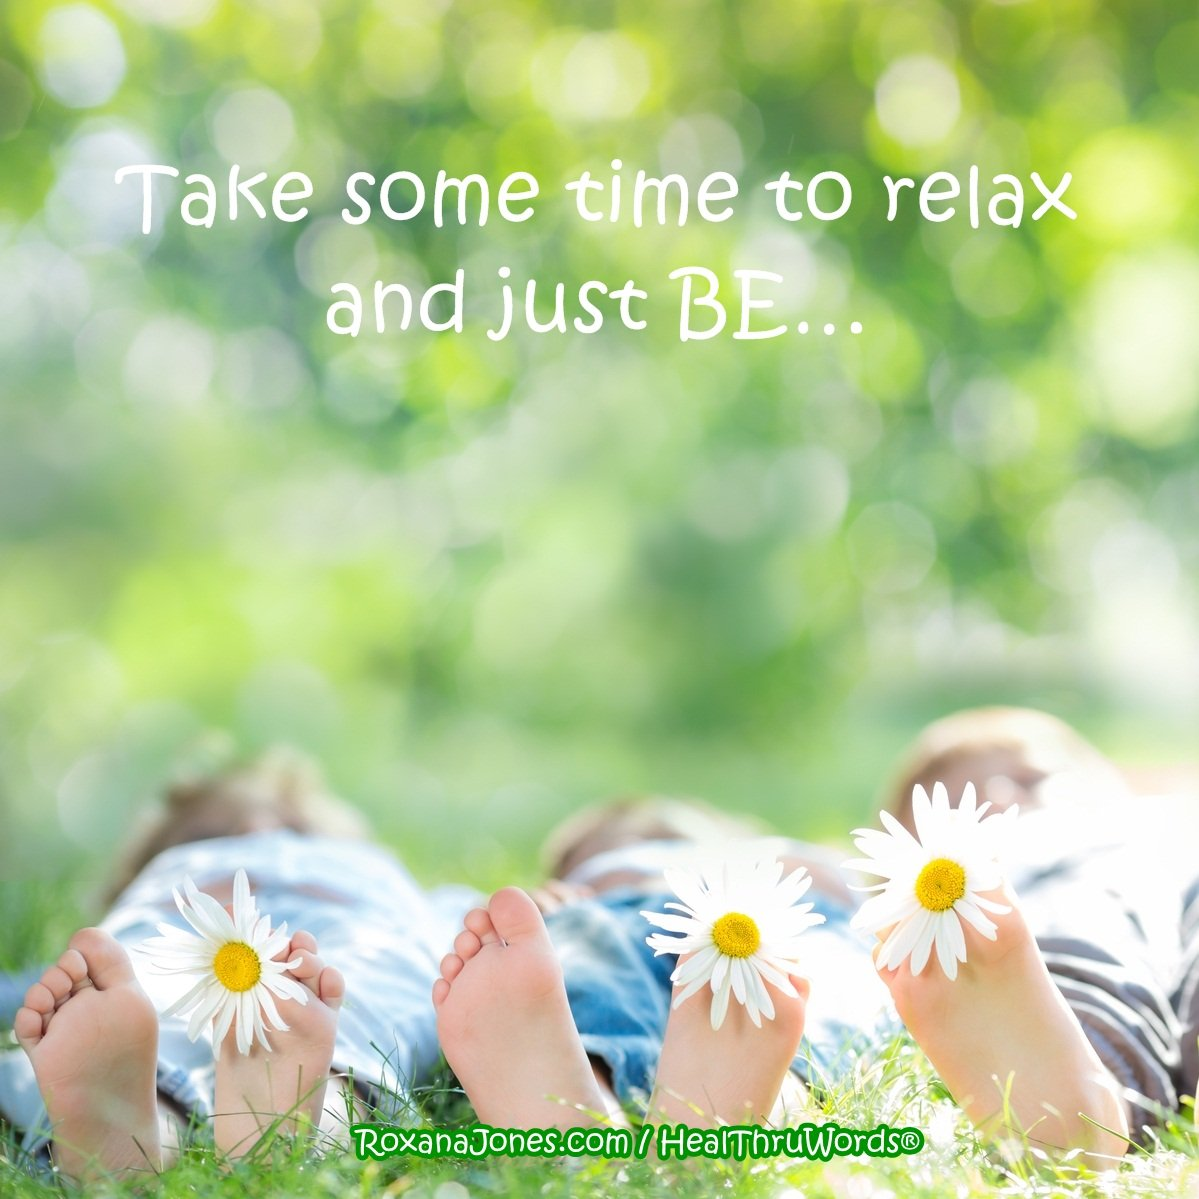 Inspirational Image: It's Time to Relax